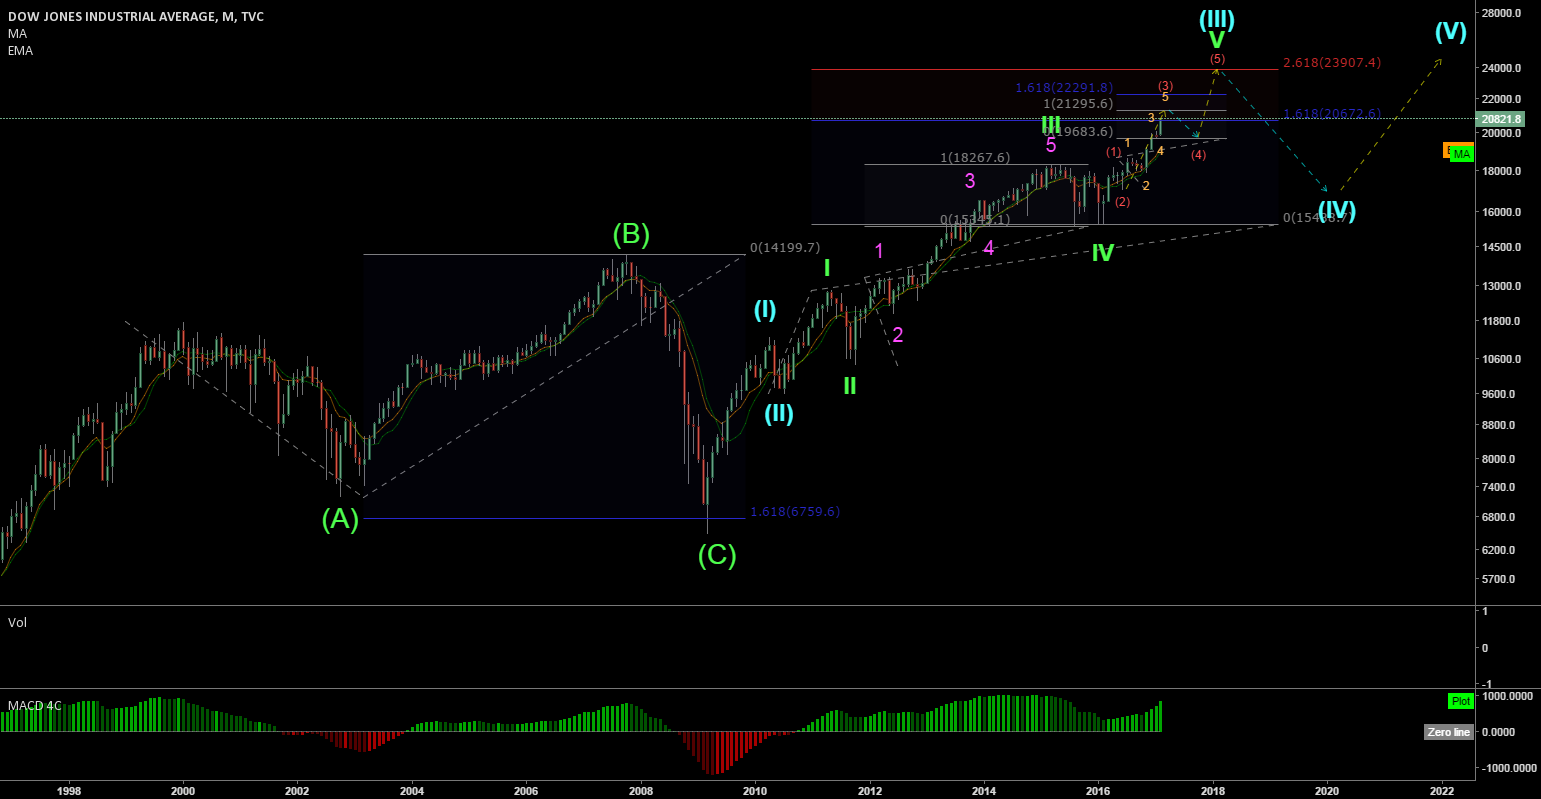 DJIA long term [2017 - 2022] forecast (wave analysis)